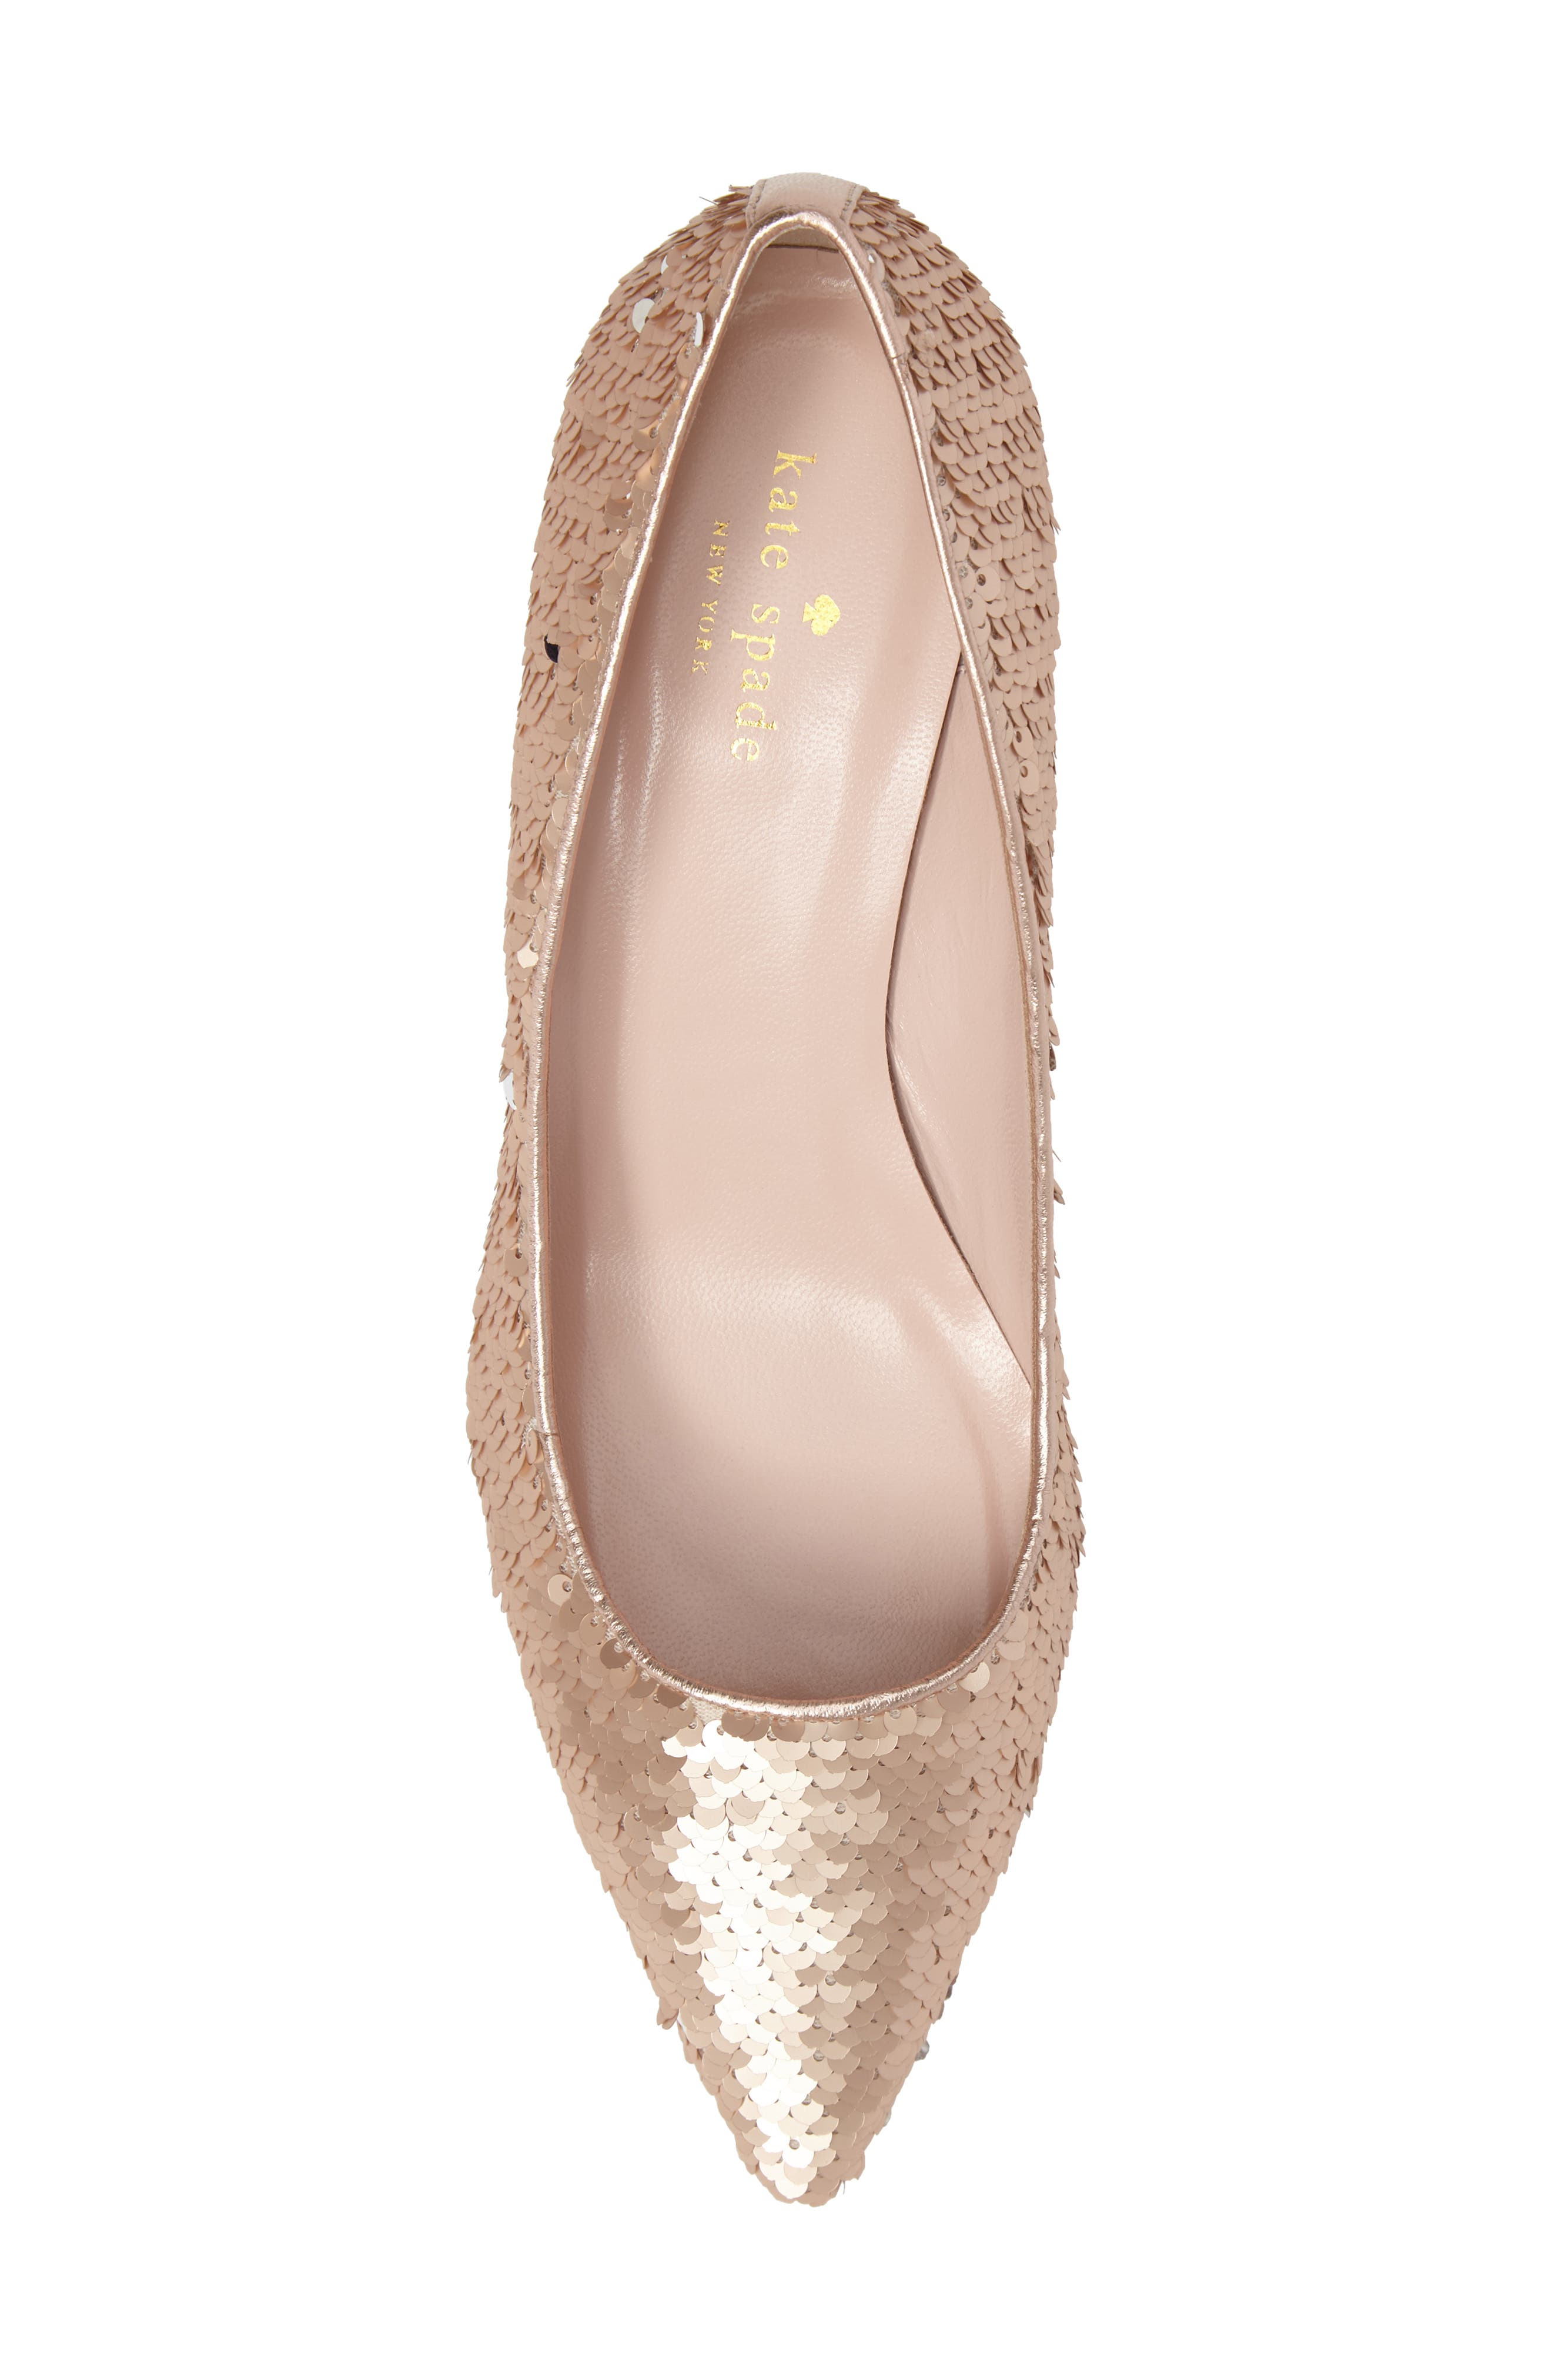 mauna sequin pump,                             Alternate thumbnail 6, color,                             Rose Gold/ Silver